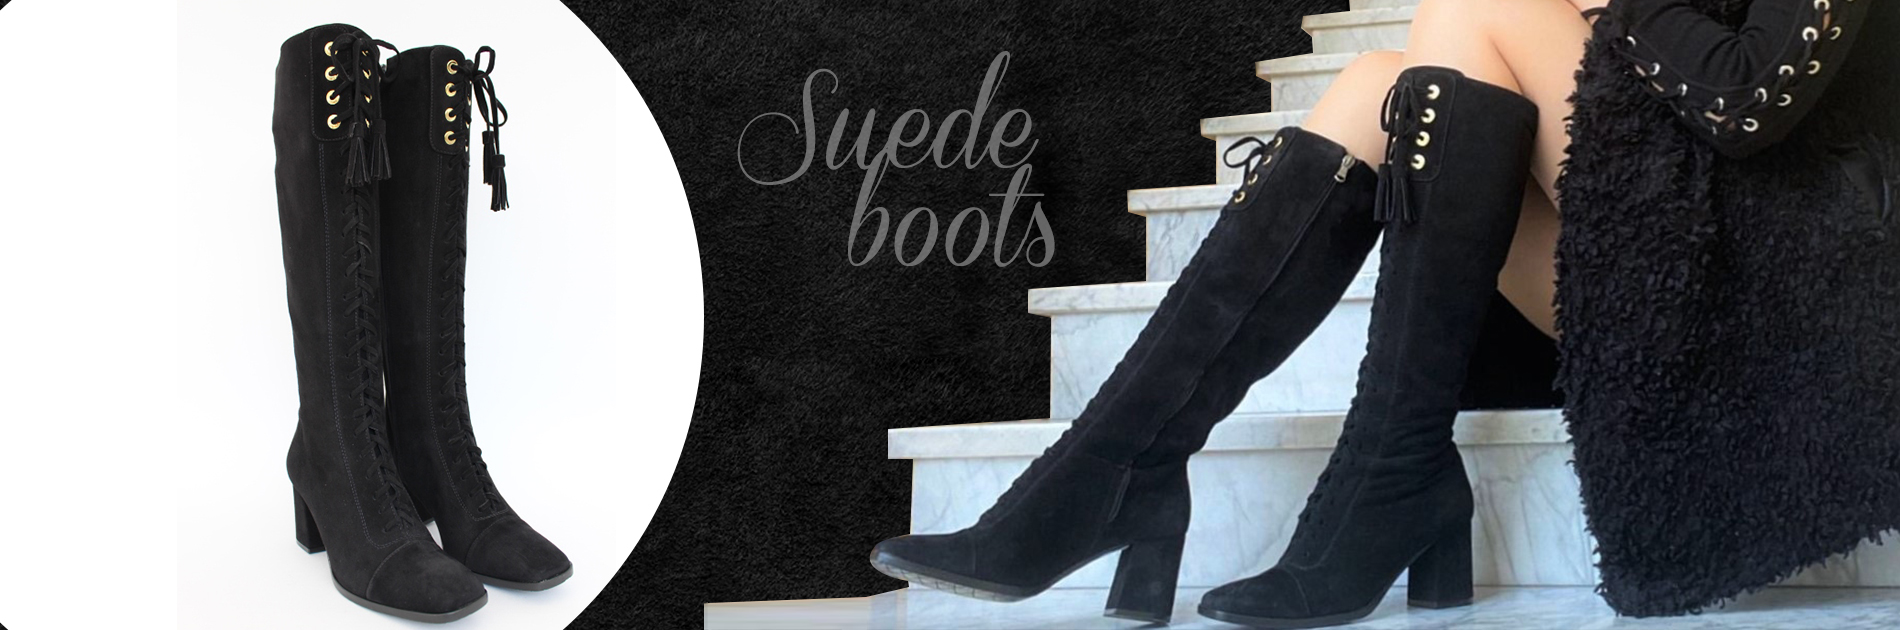 suede-boots